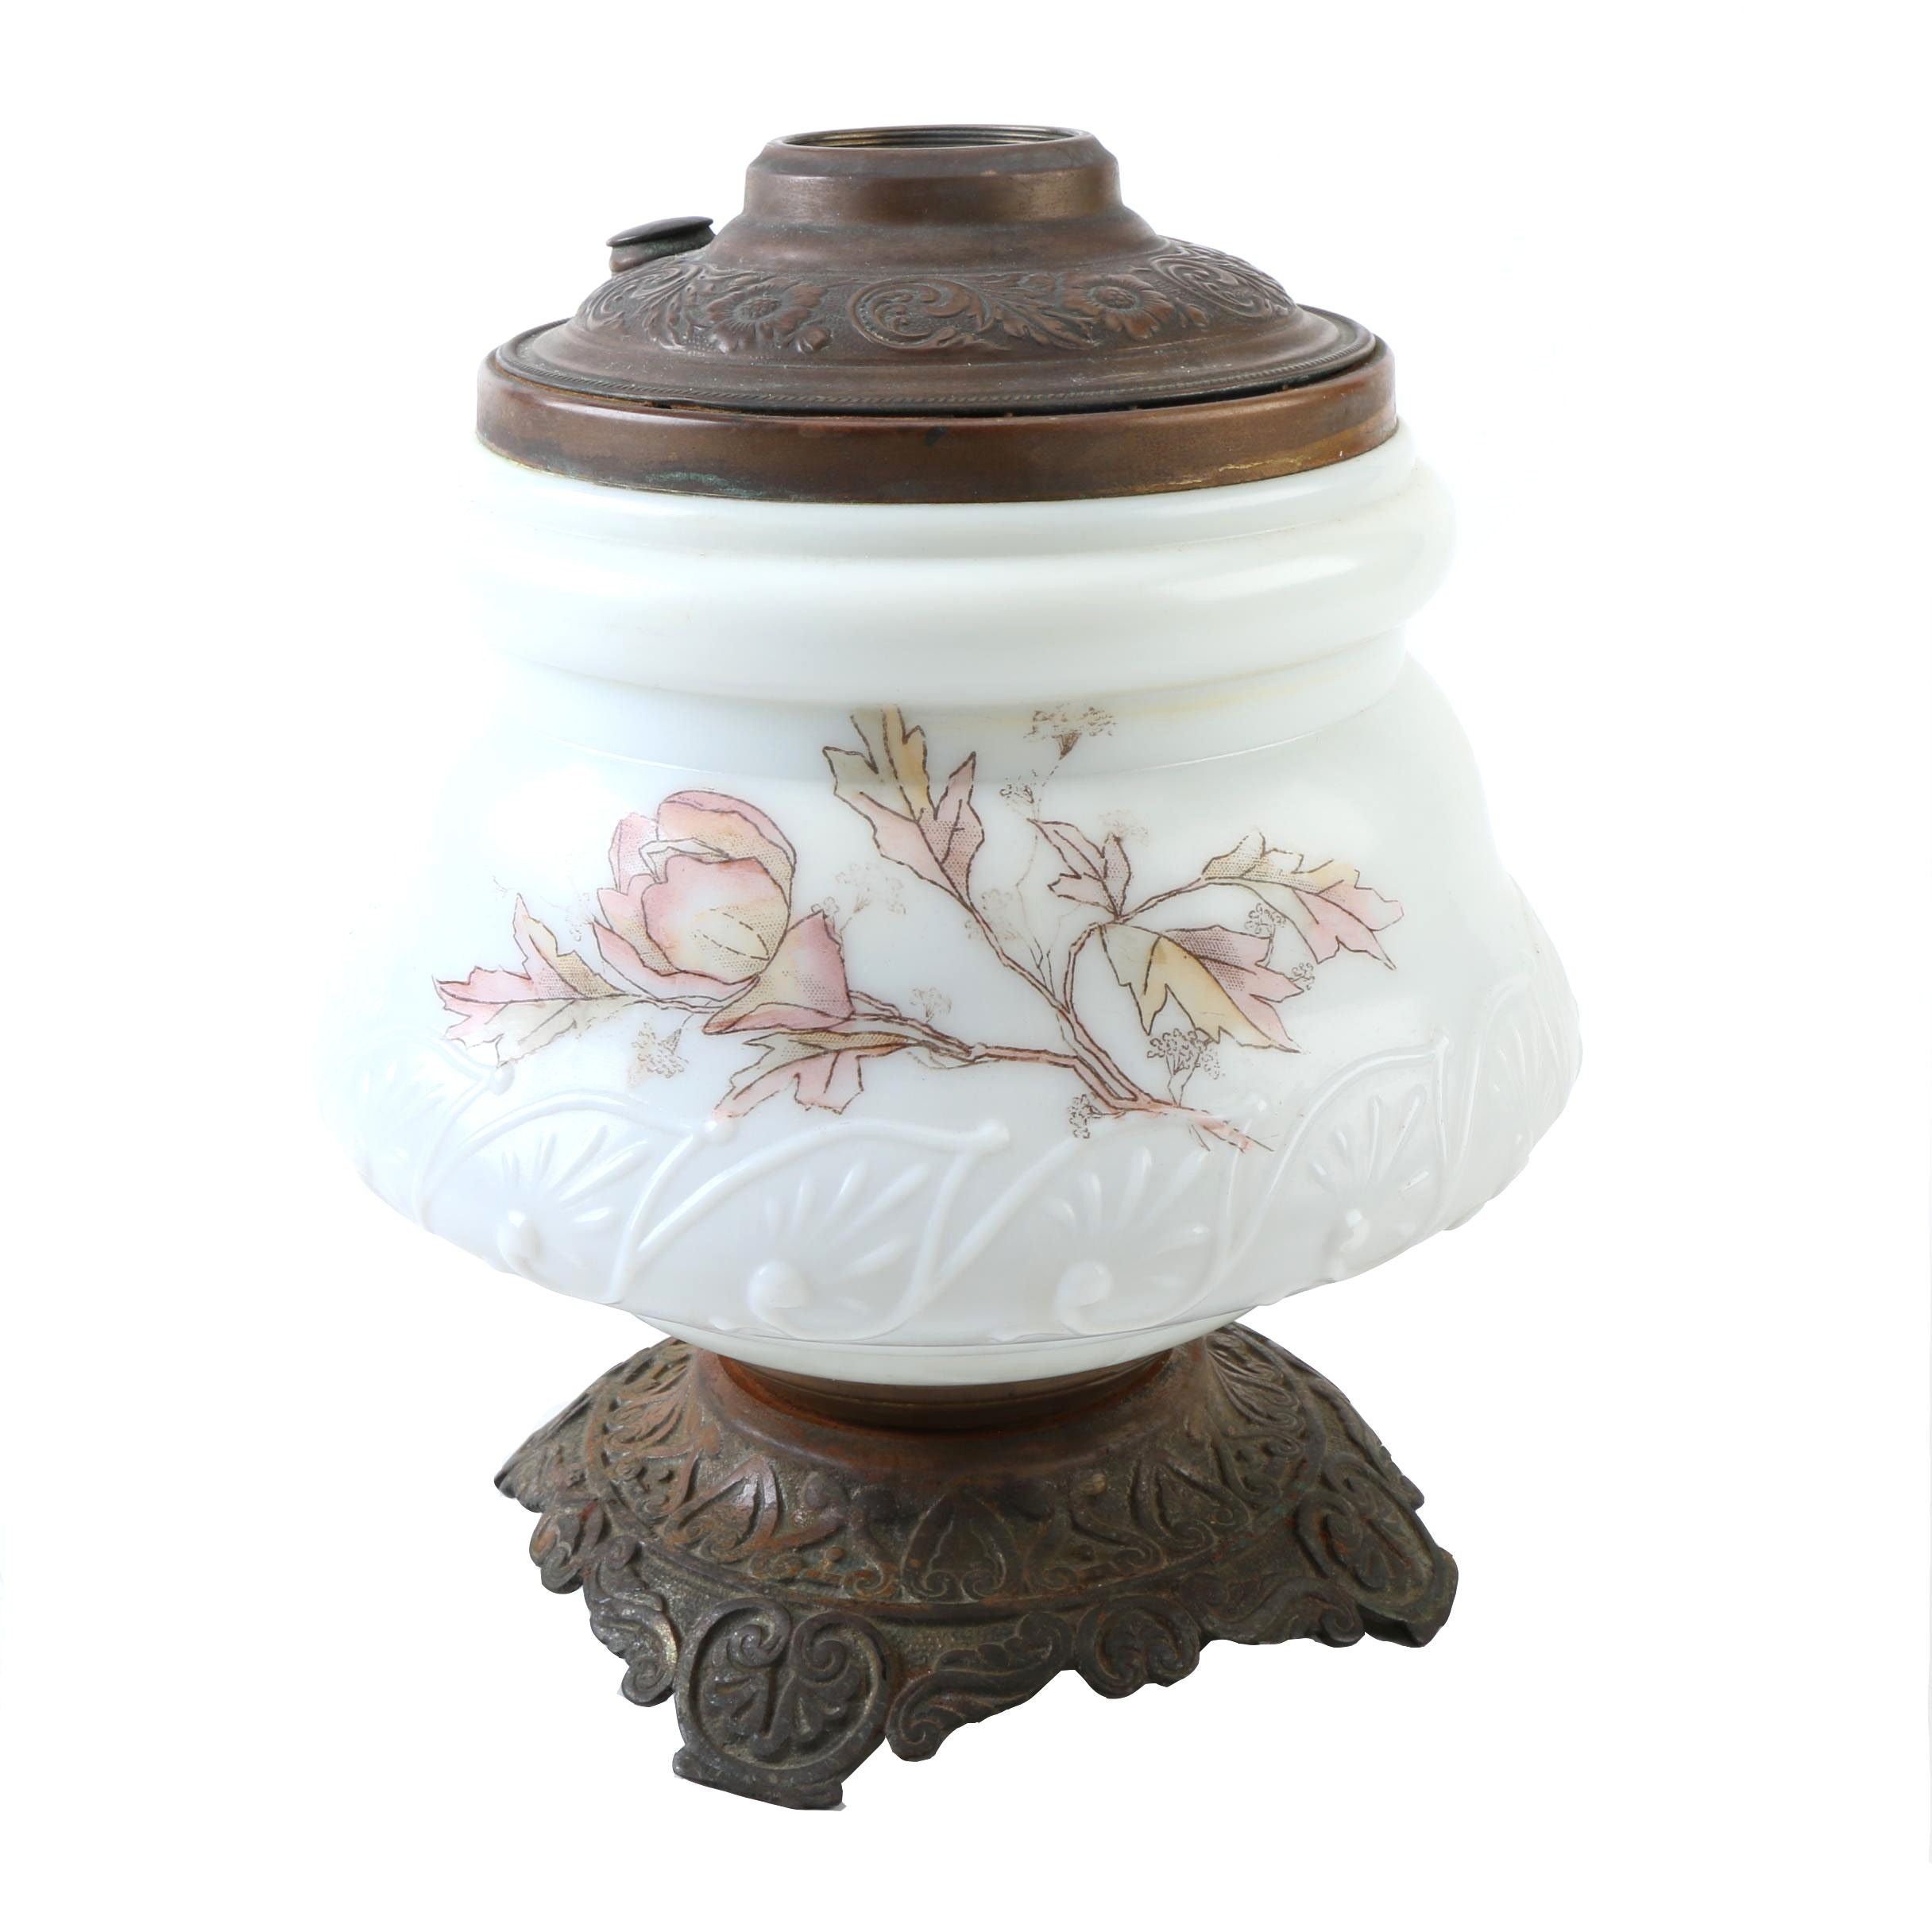 Vintage White Porcelain Lamp Base with Floral Design